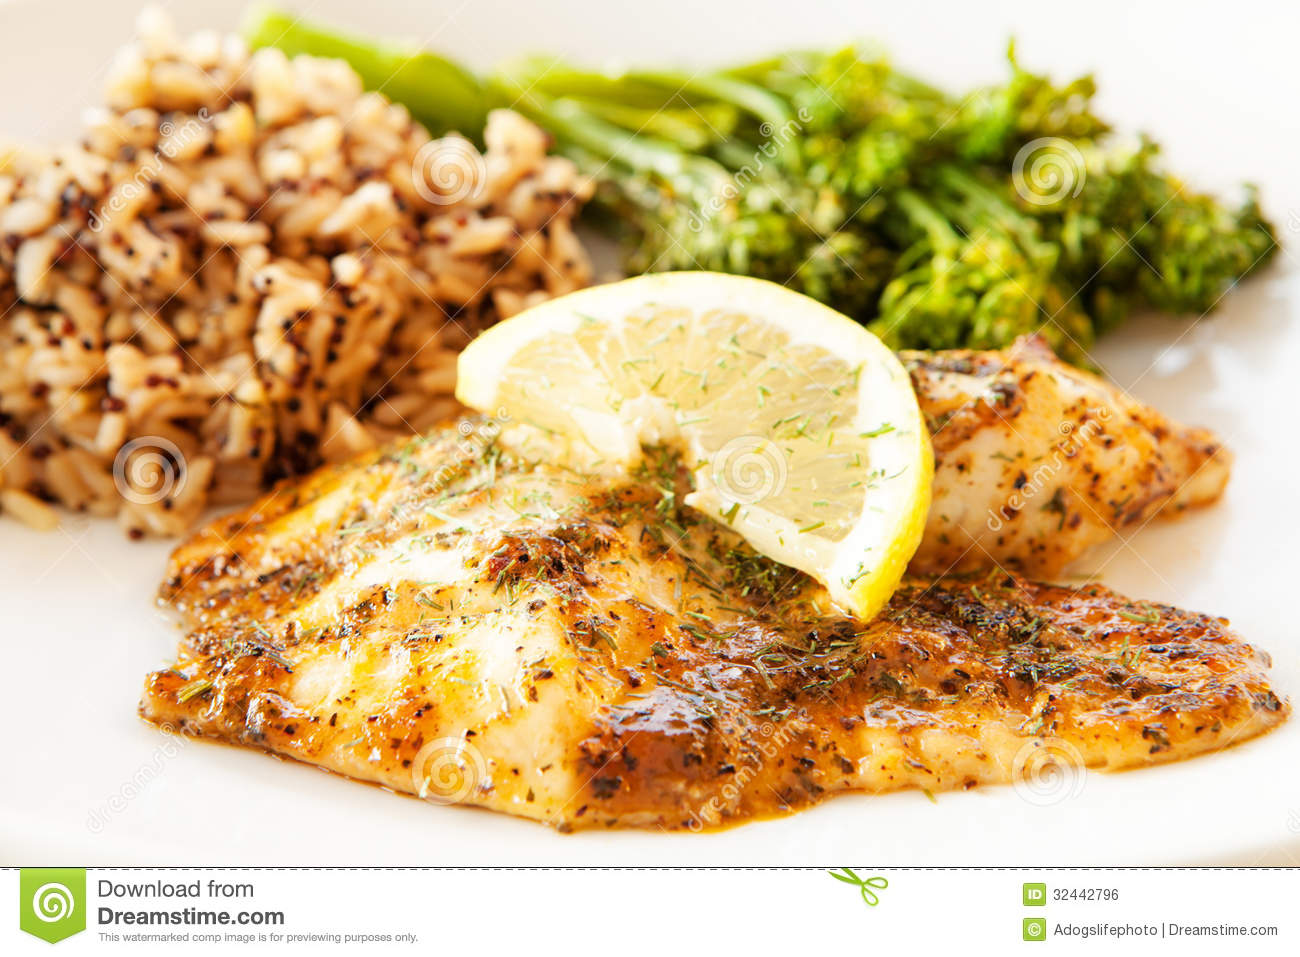 Blackened tilapia with wild rice and broccoli stock photo for Fish and broccoli diet